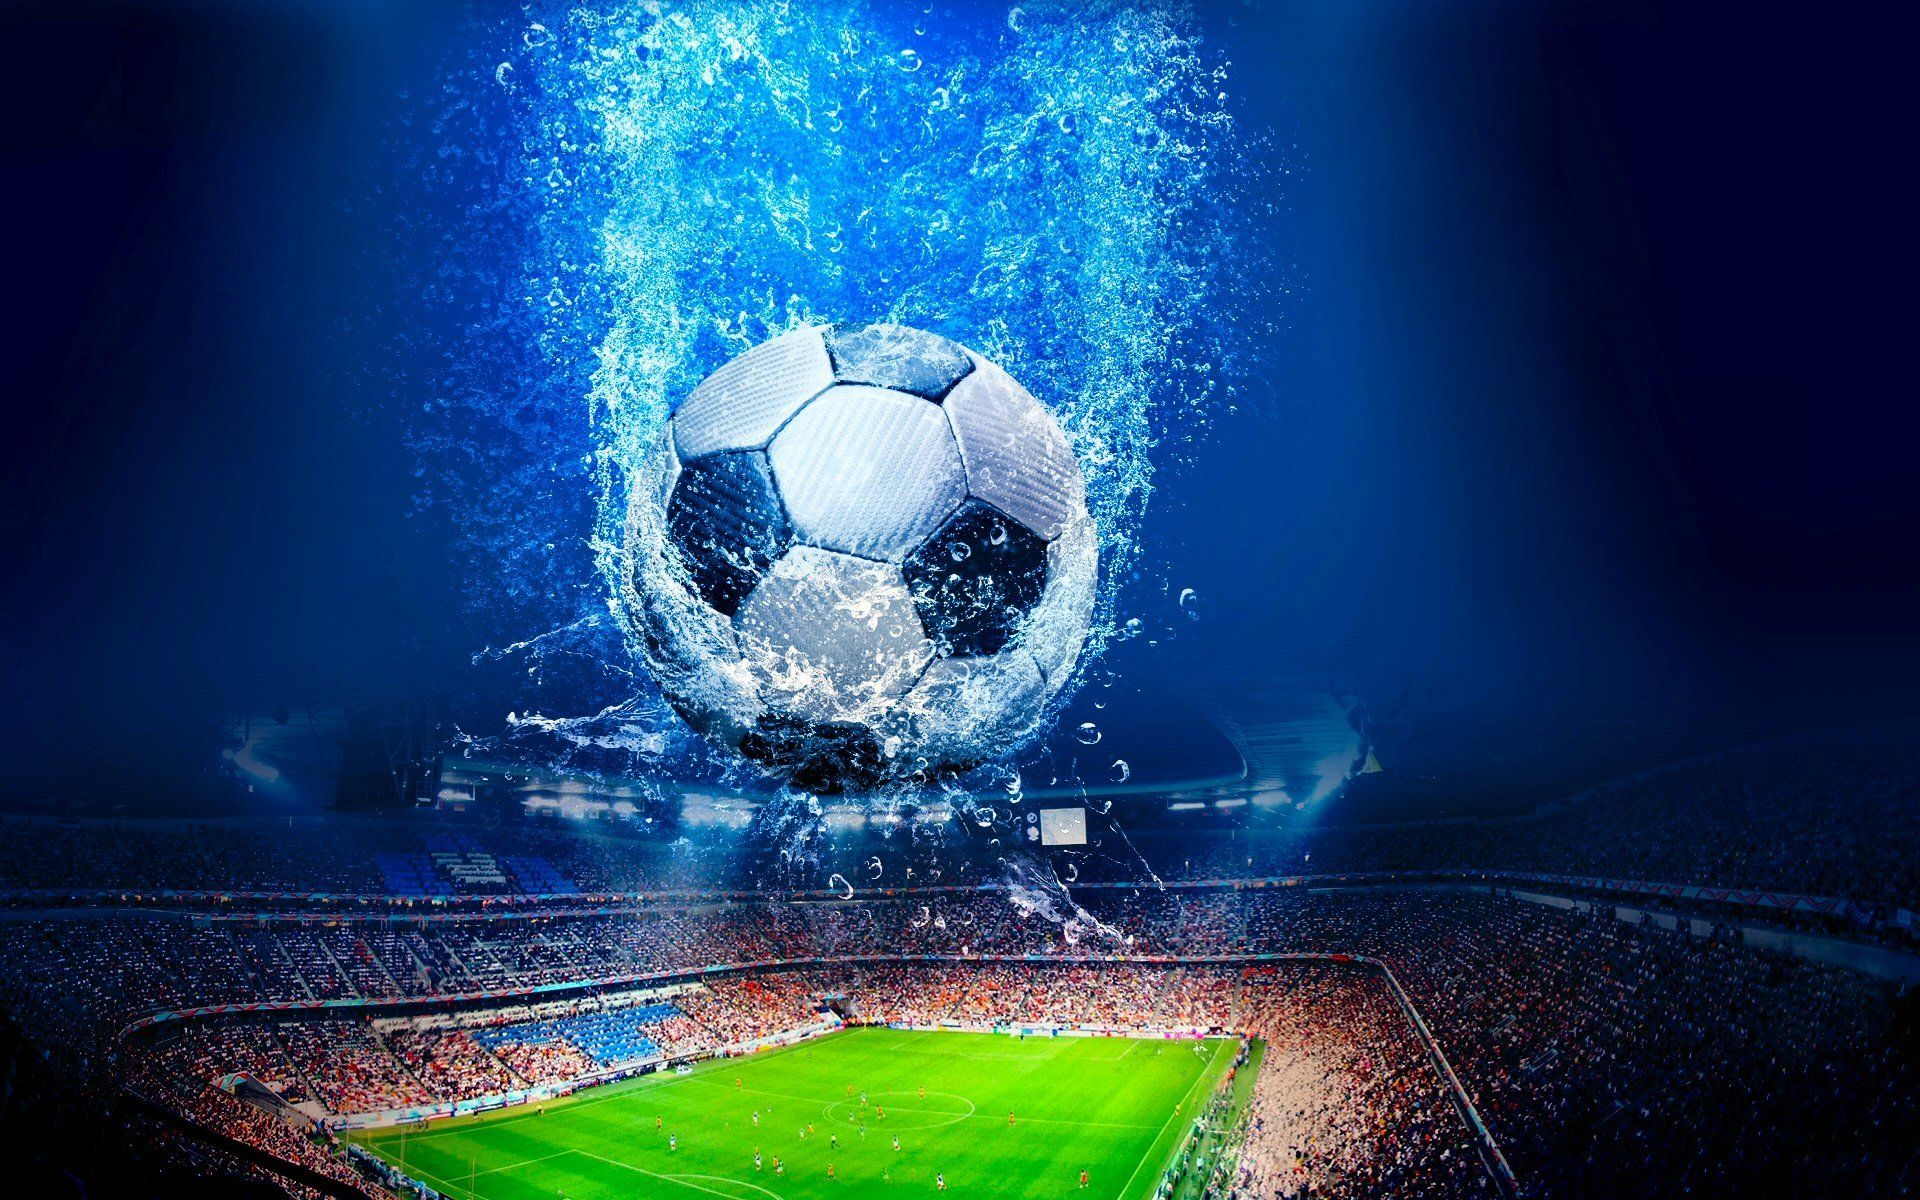 Football Background Hd Posted By Ethan Simpson